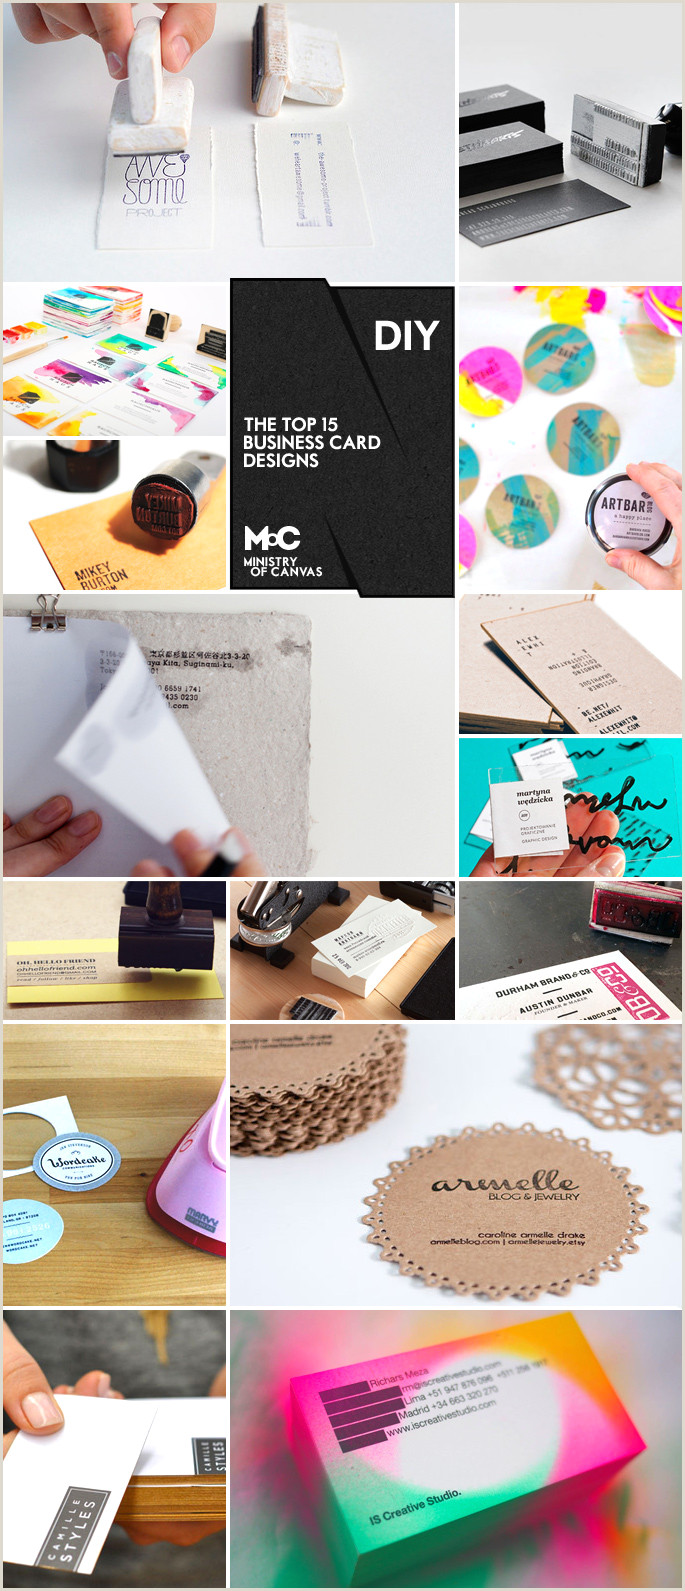 Making Your Own Business Card 6 Super Easy Ways To Create Handmade Diy Business Cards